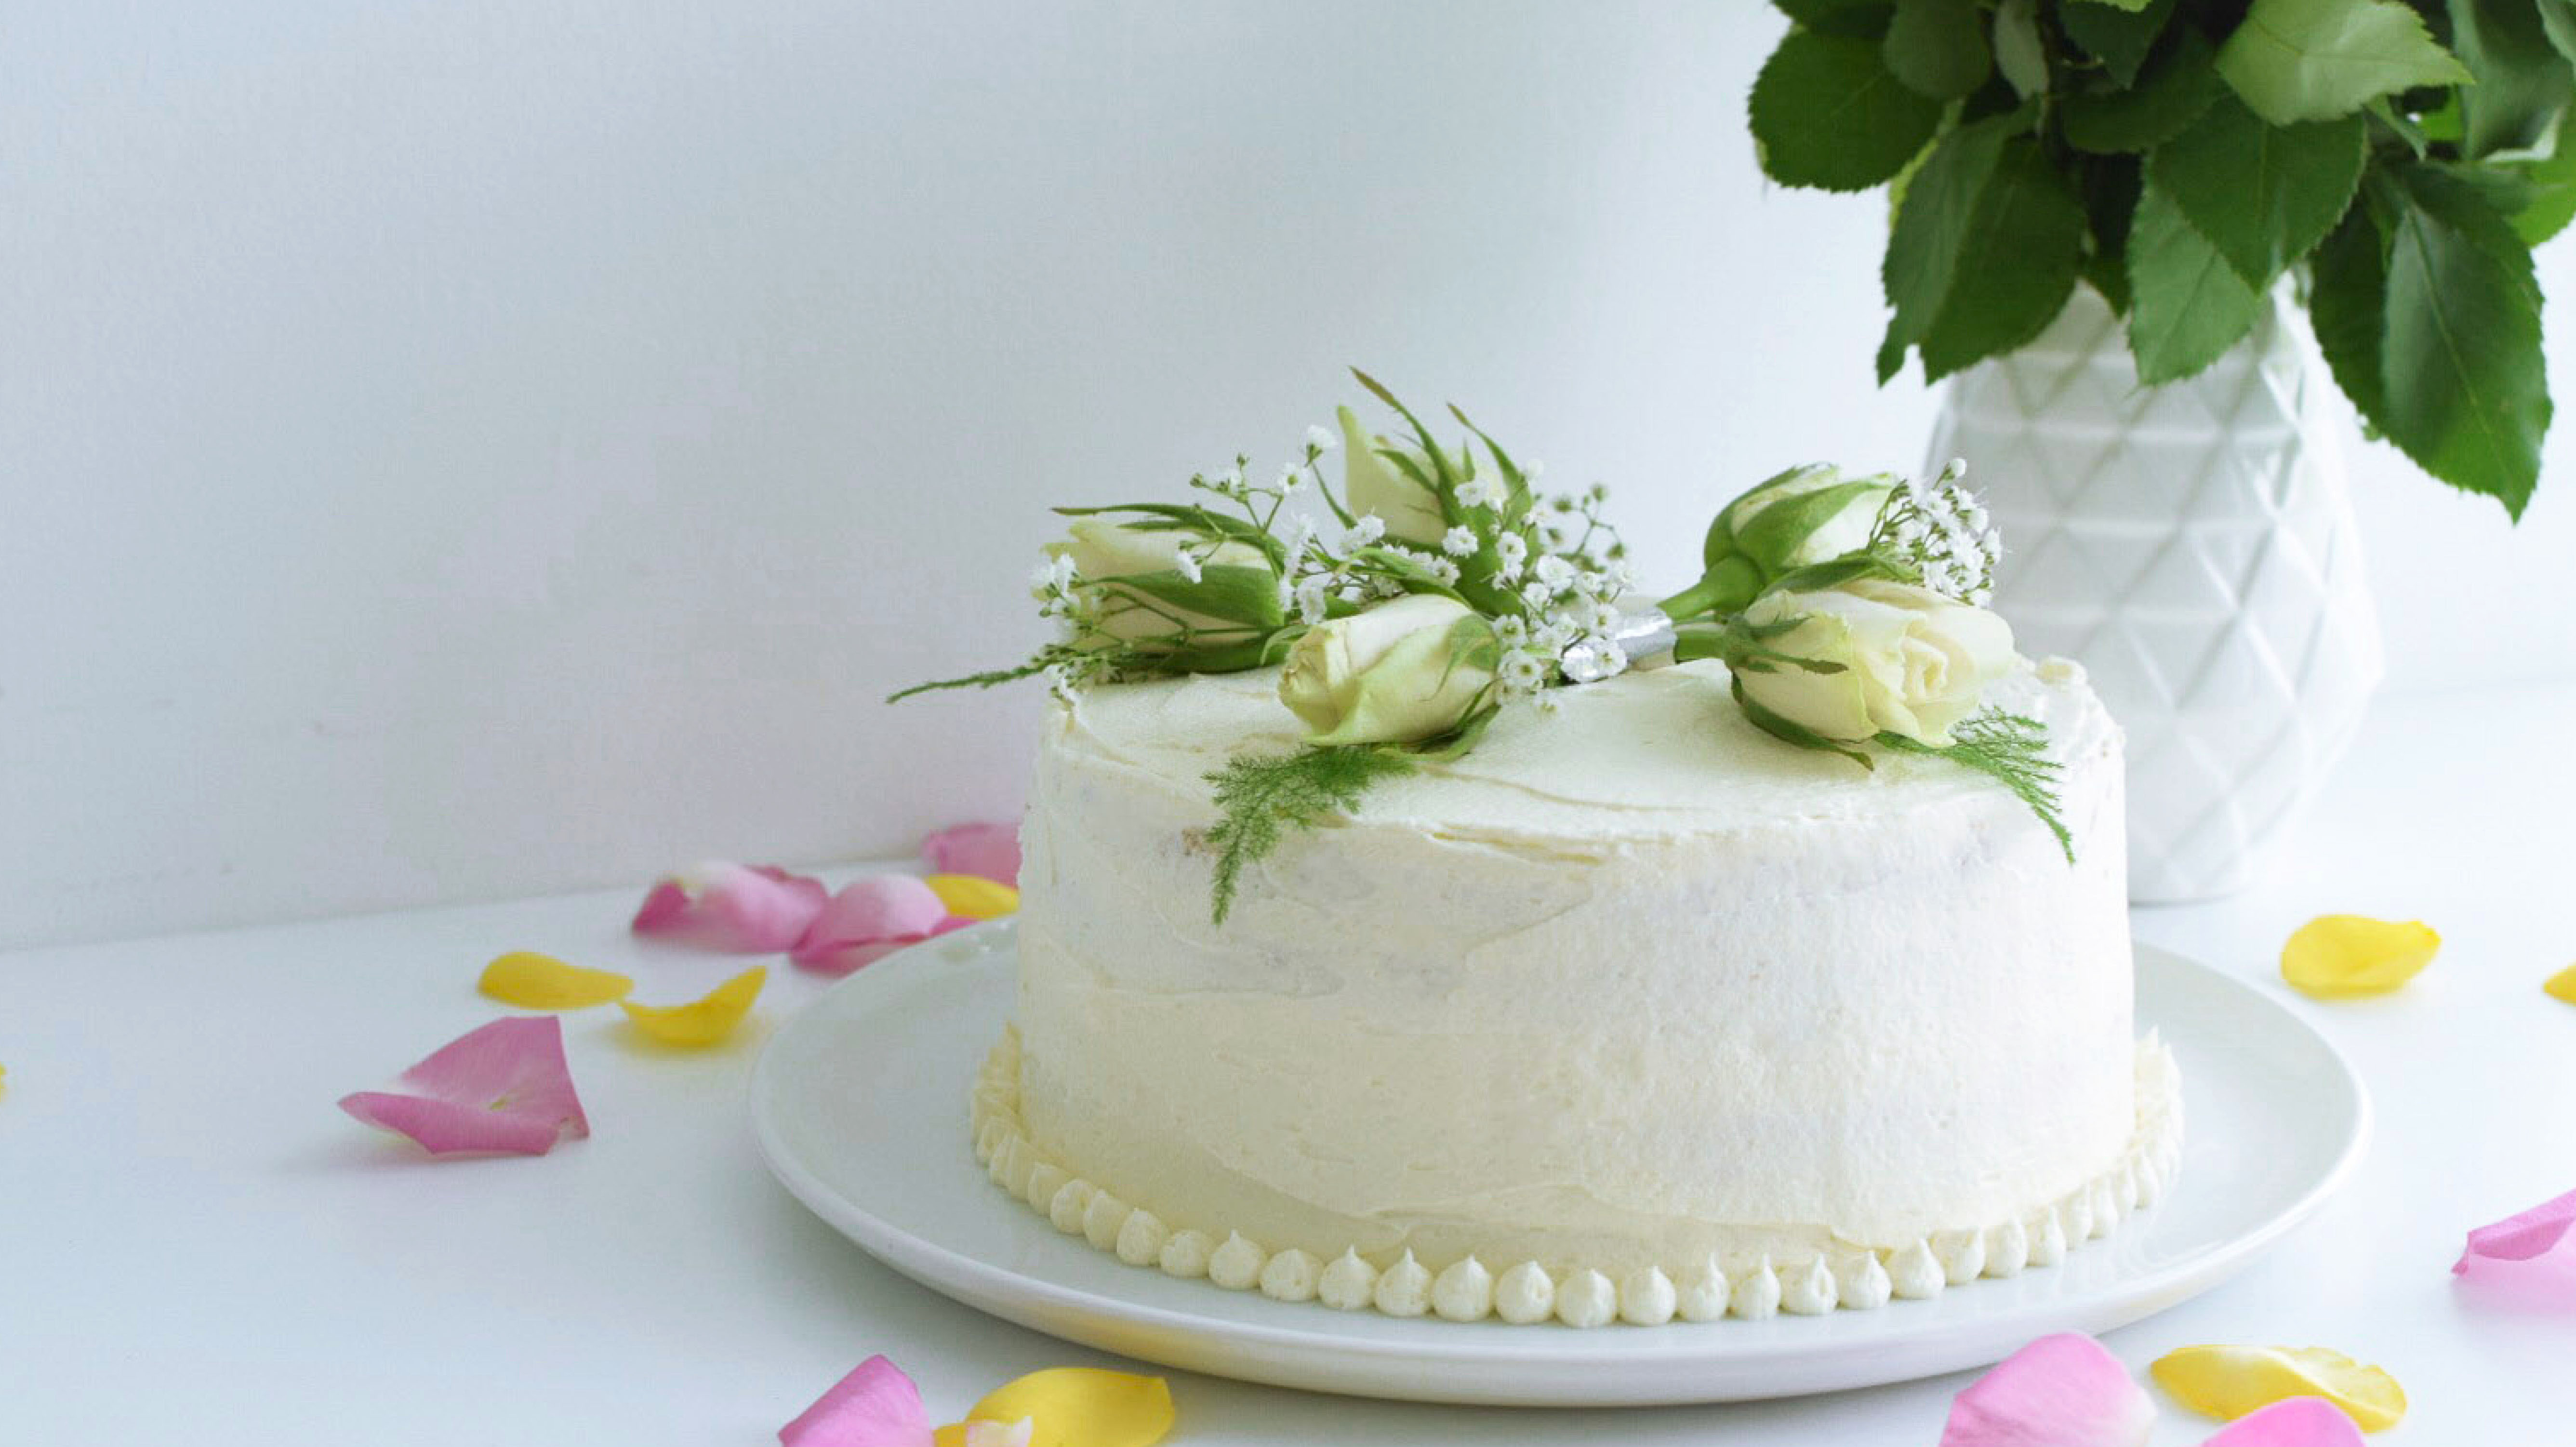 Elderflower and Lemon Curd Celebration Cake